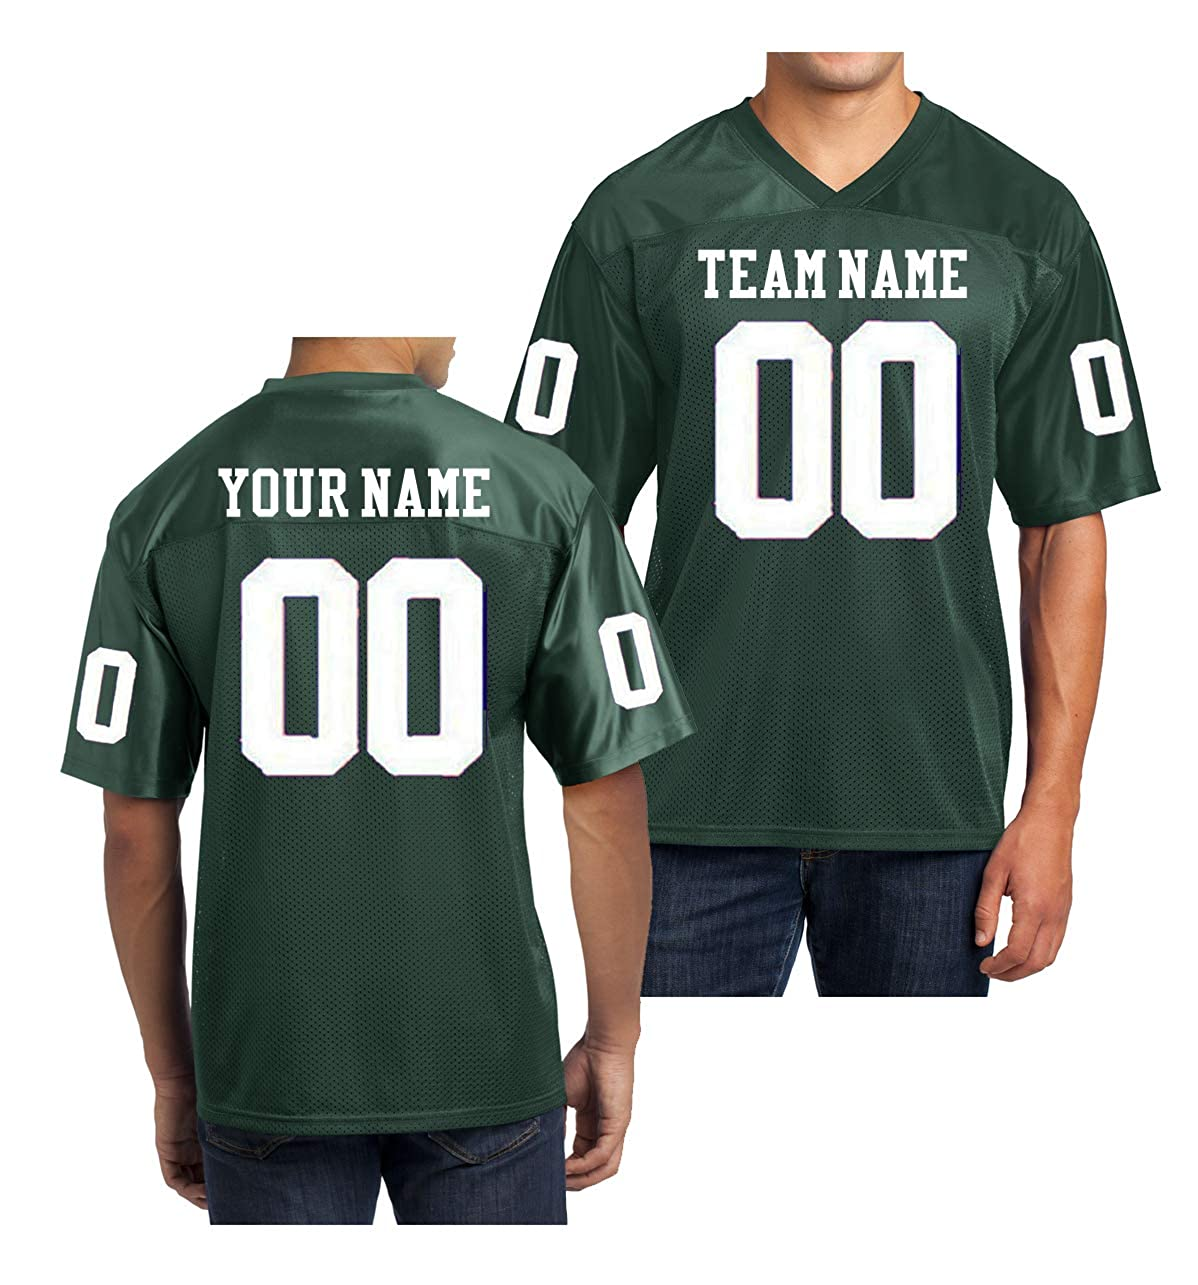 5ee6b8566e2 Amazon.com  Custom Football Replica Team Jersey  Clothing